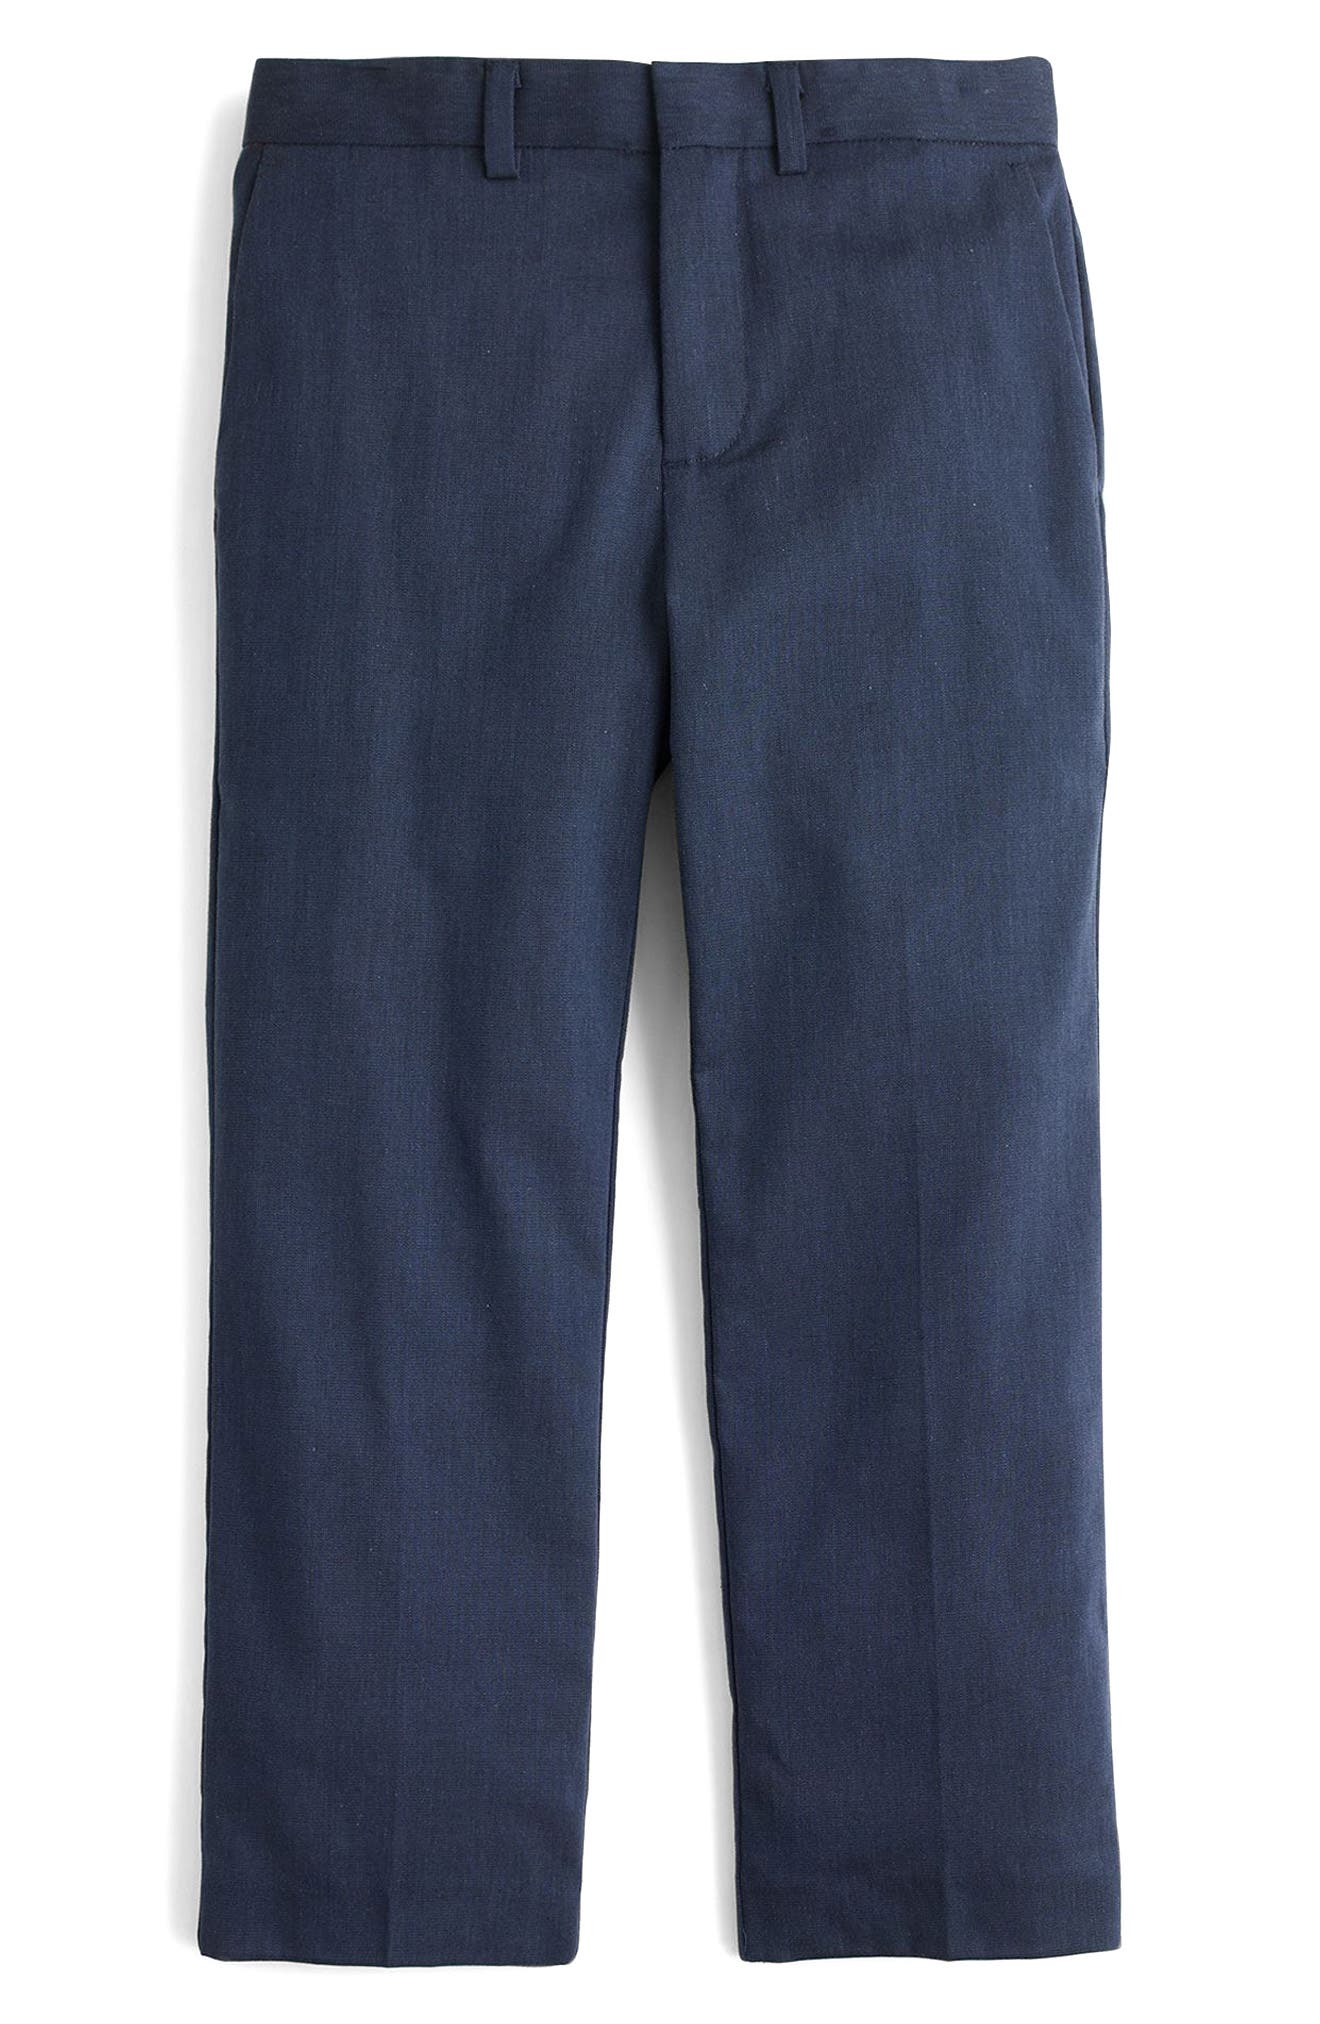 Ludlow Suit Pants,                             Main thumbnail 1, color,                             Navy